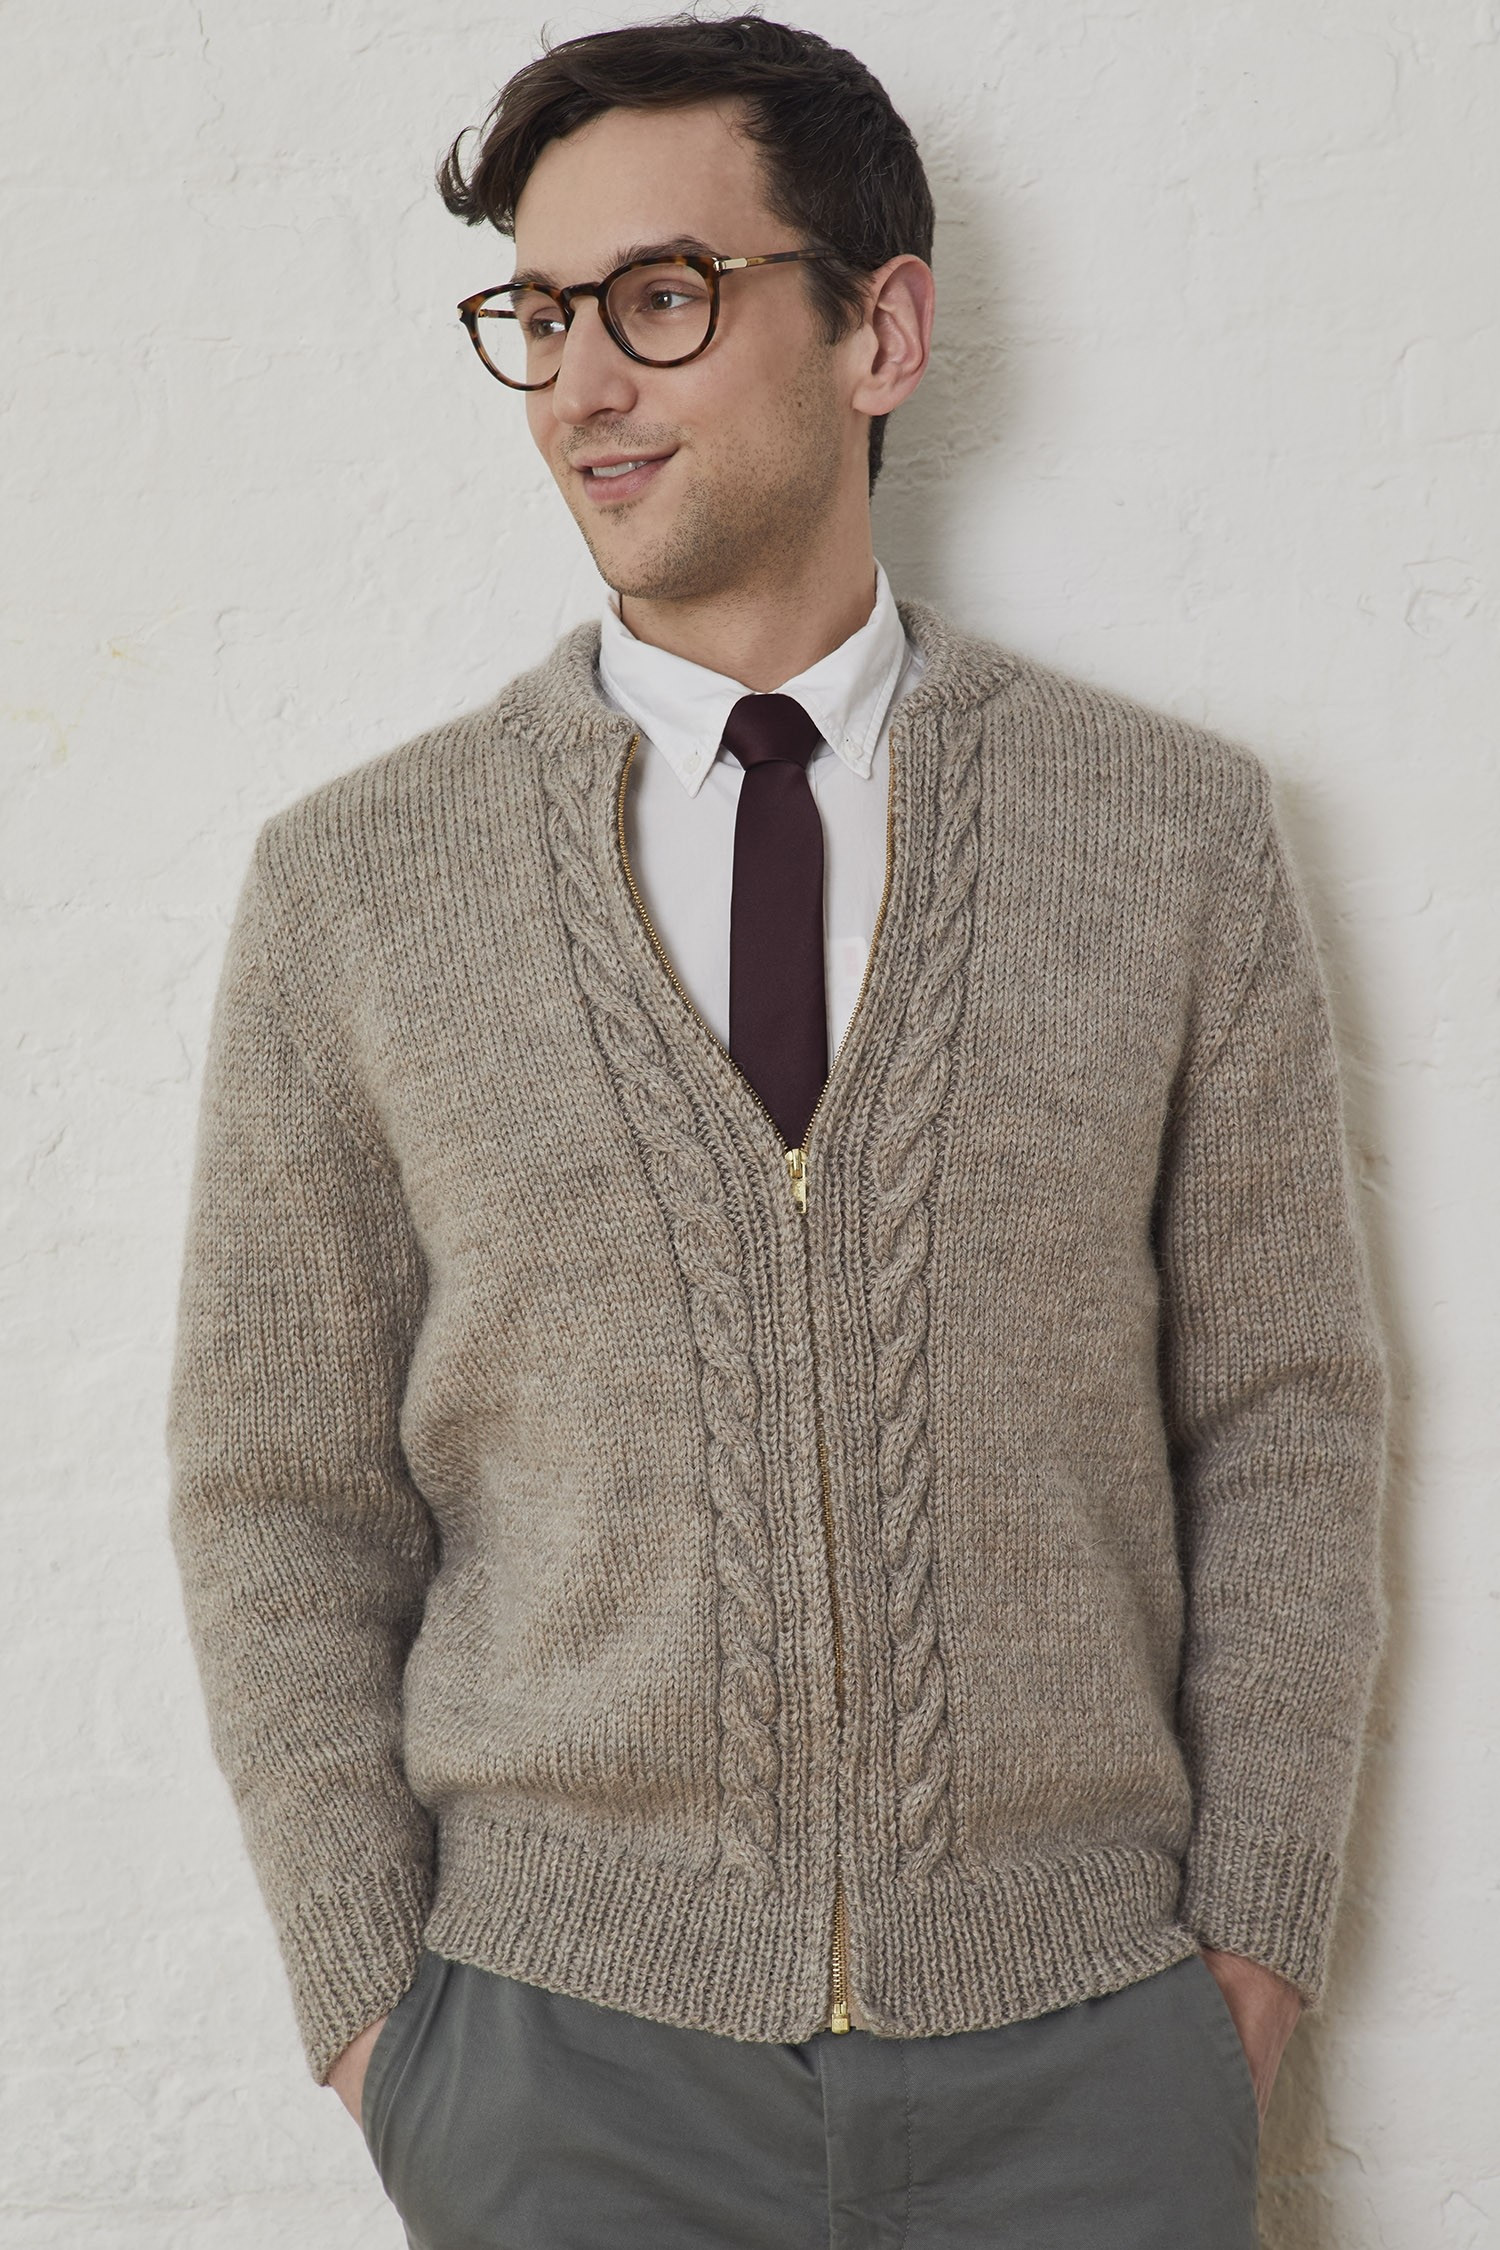 New Free Men S Knitting Pattern for A Neighborly Cardigan Mens Sweater Knitting Pattern Of Adorable 48 Pics Mens Sweater Knitting Pattern